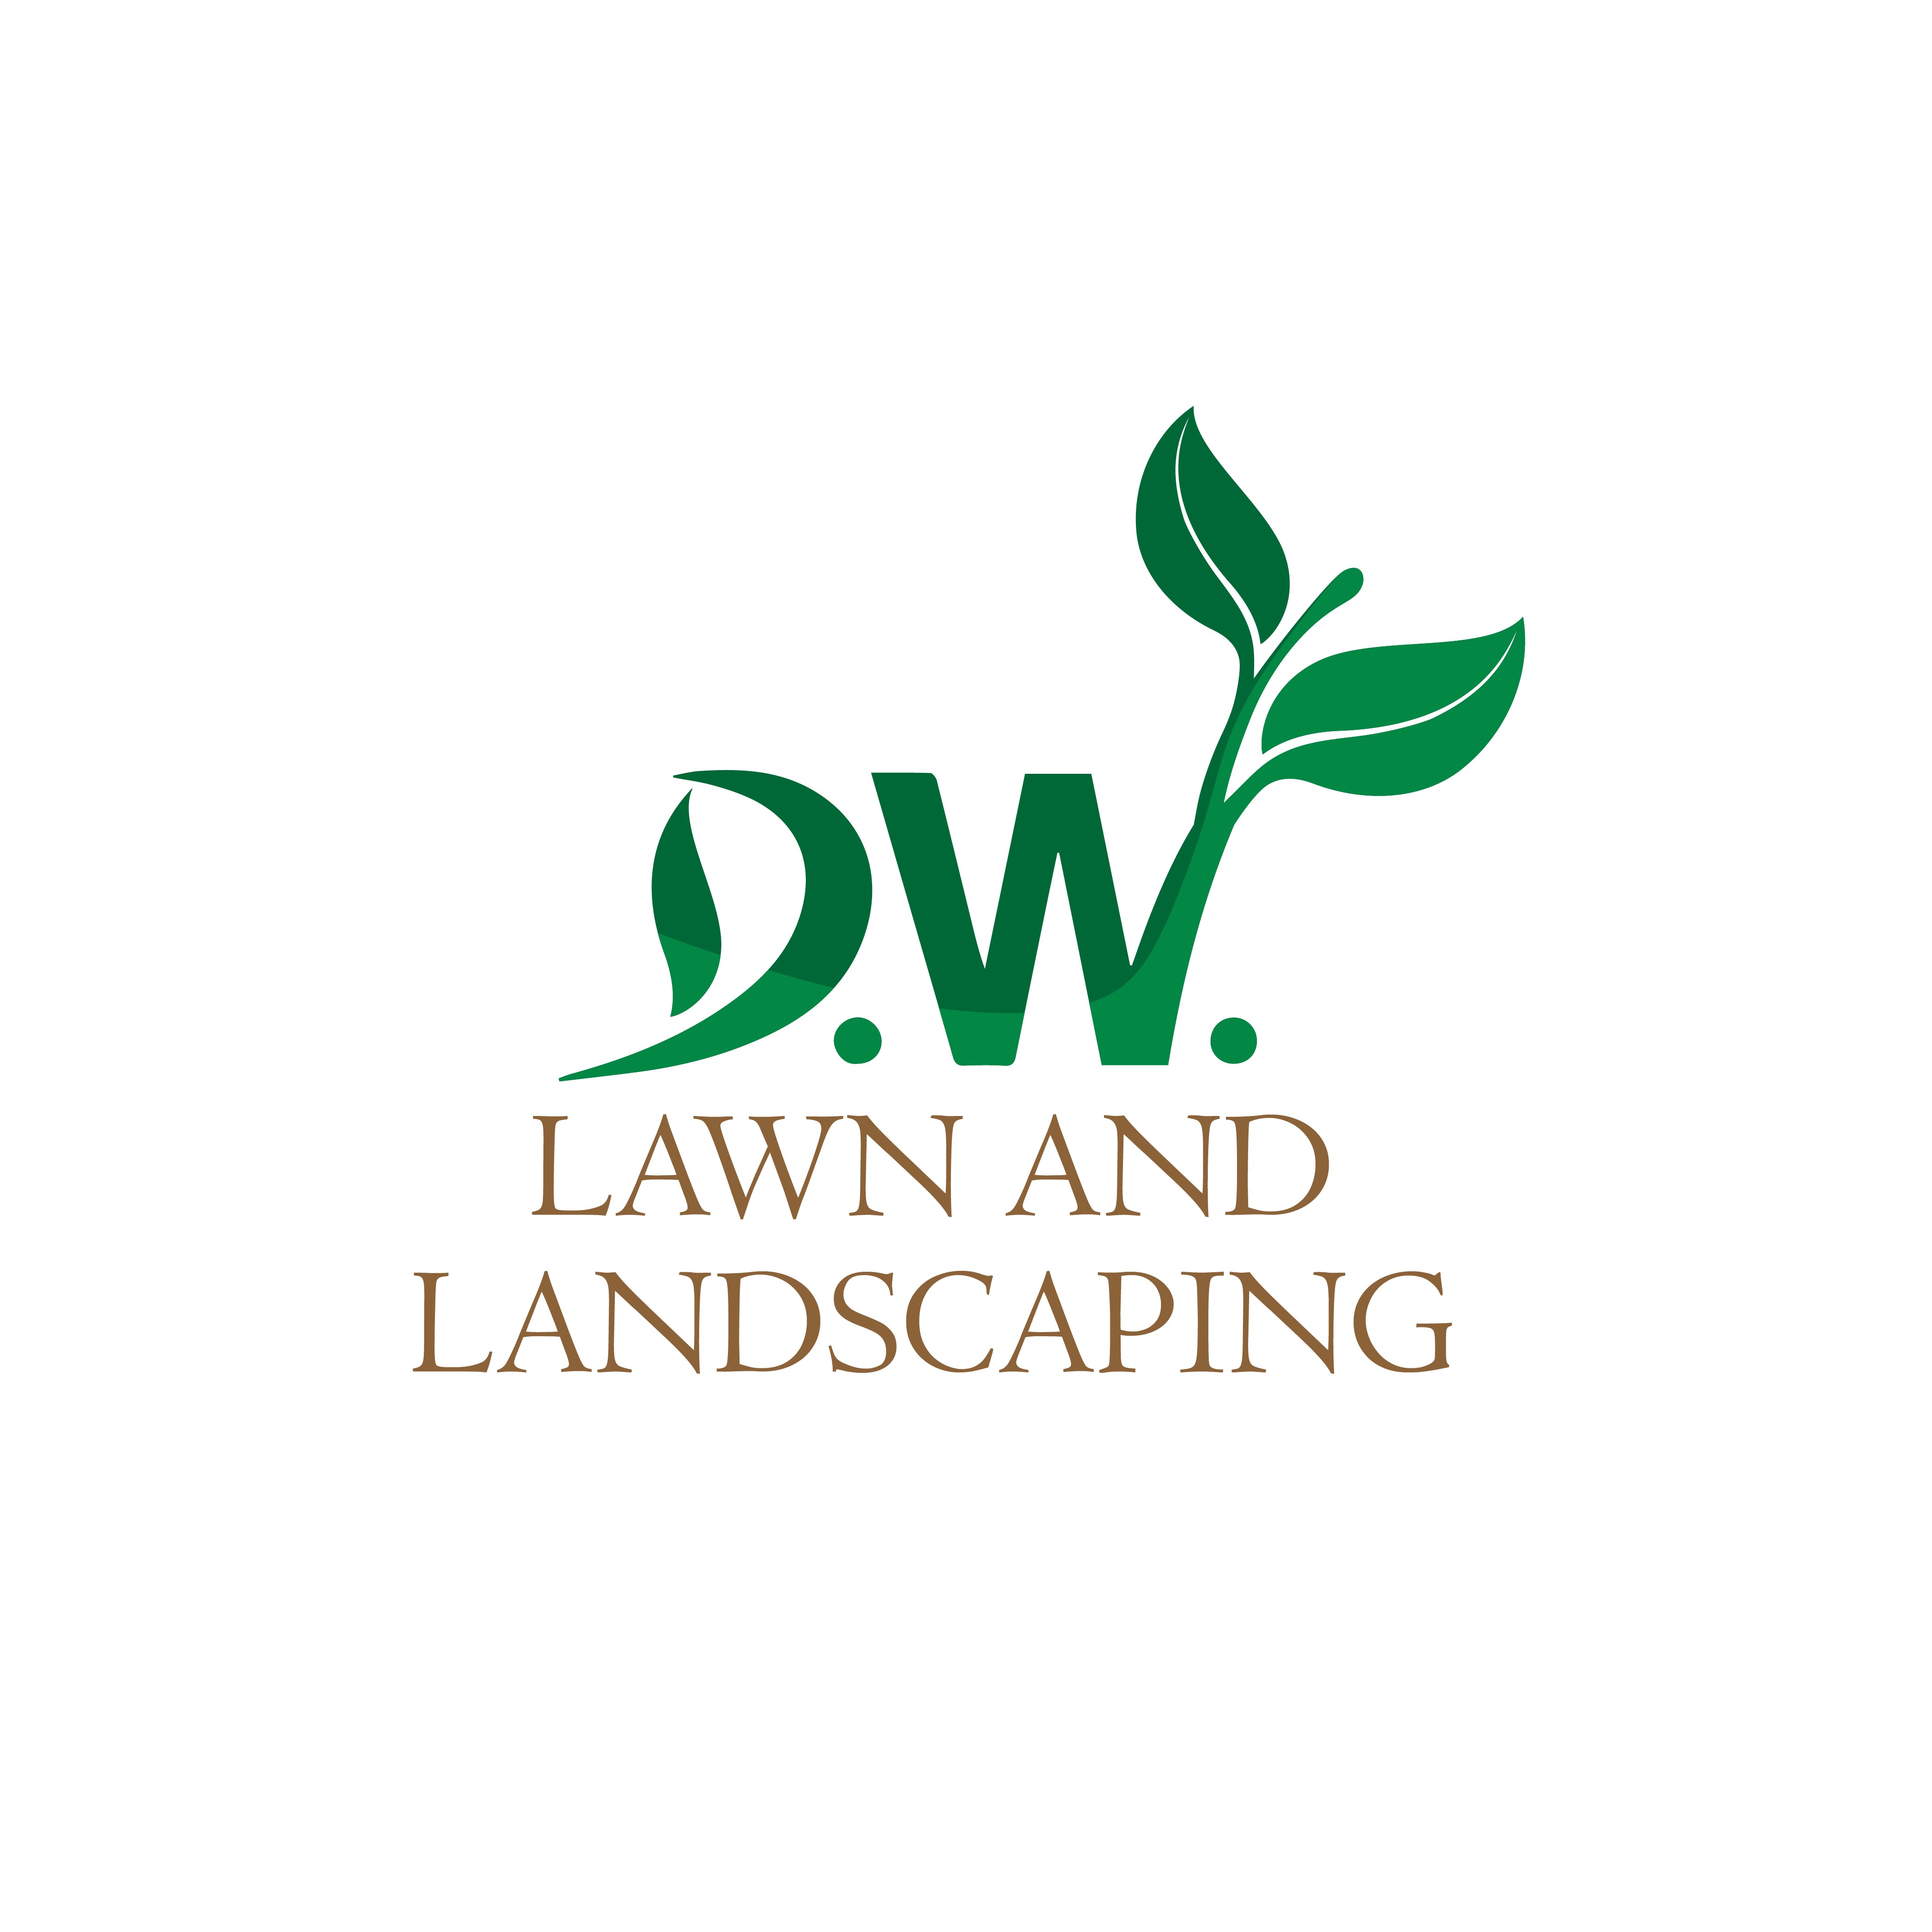 DW Lawn and Landscaping LLC